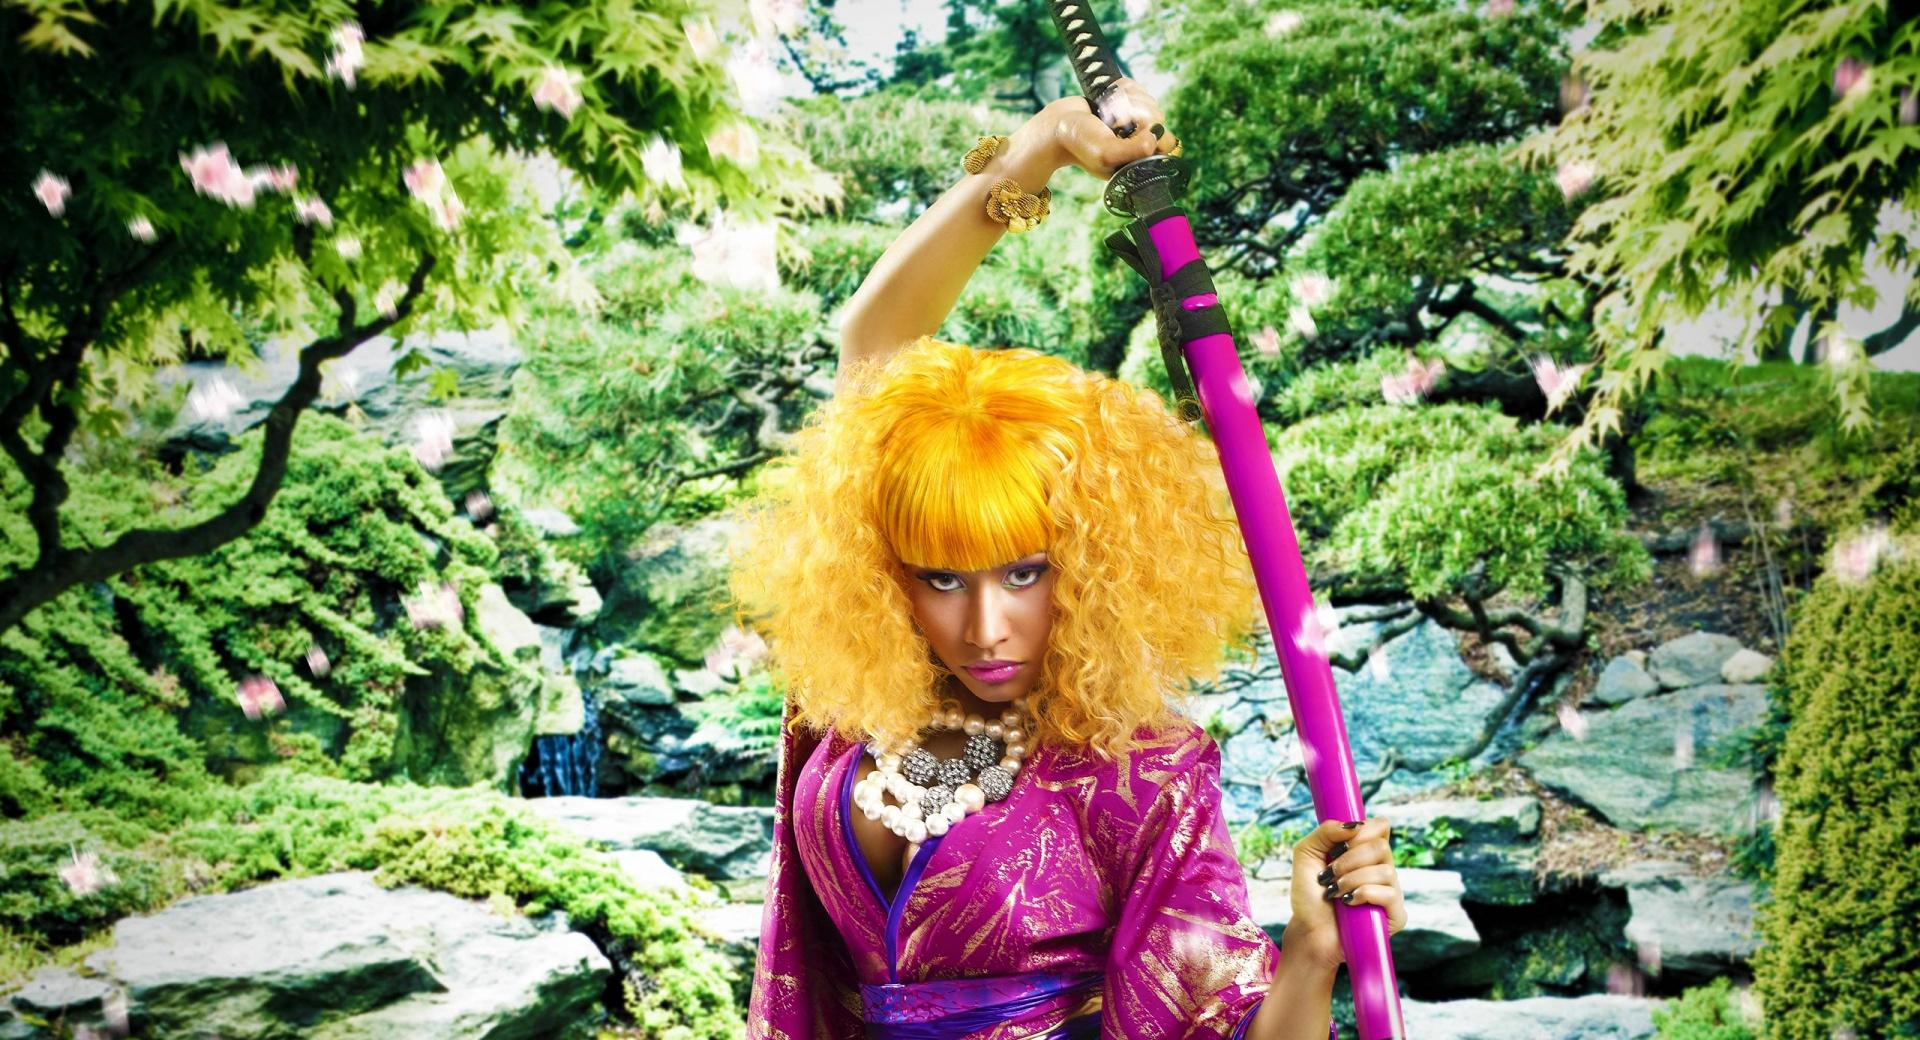 Nicki Minaj Samurai wallpapers HD quality